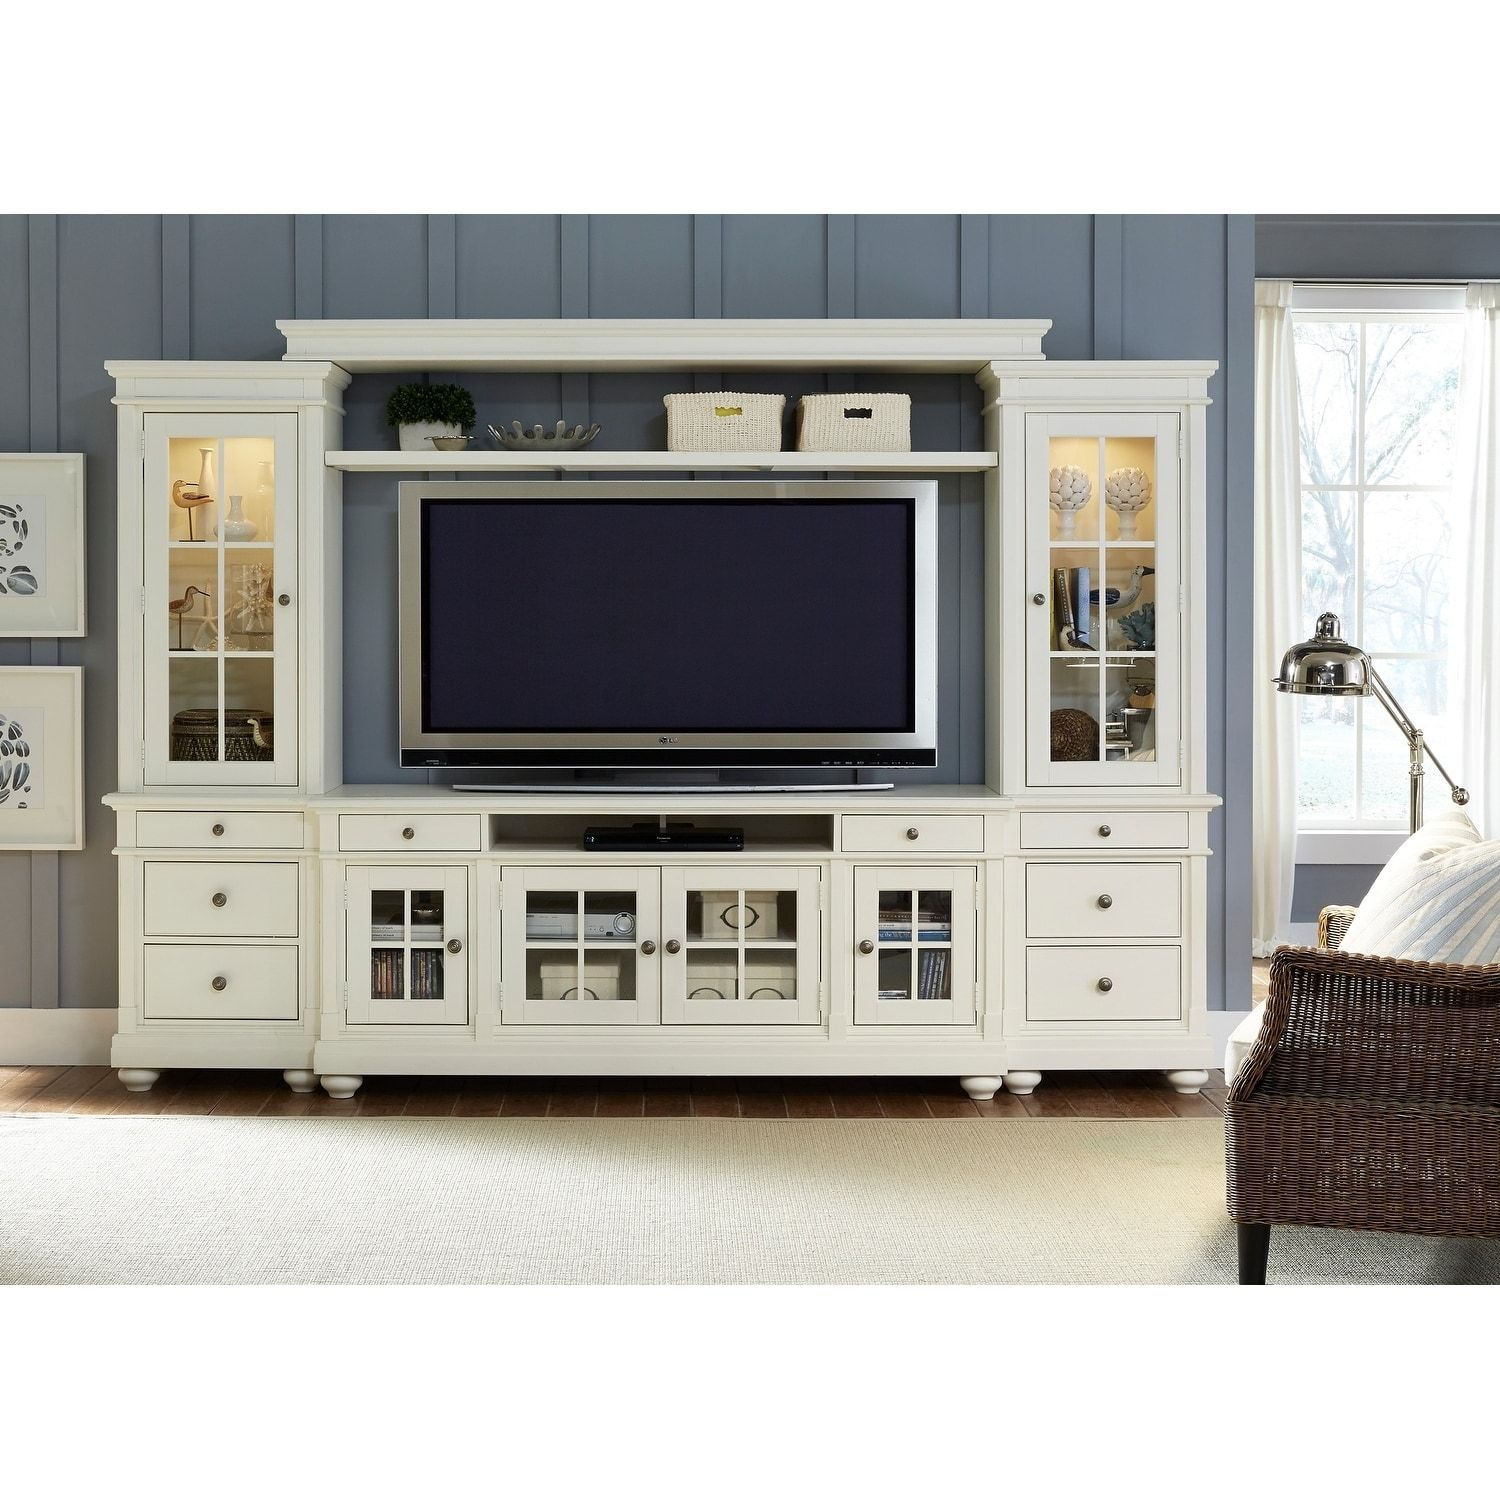 Overstock Com Online Shopping Bedding Furniture Electronics Jewelry Clothing More Paula Deen Furniture Entertainment Wall Units Liberty Furniture